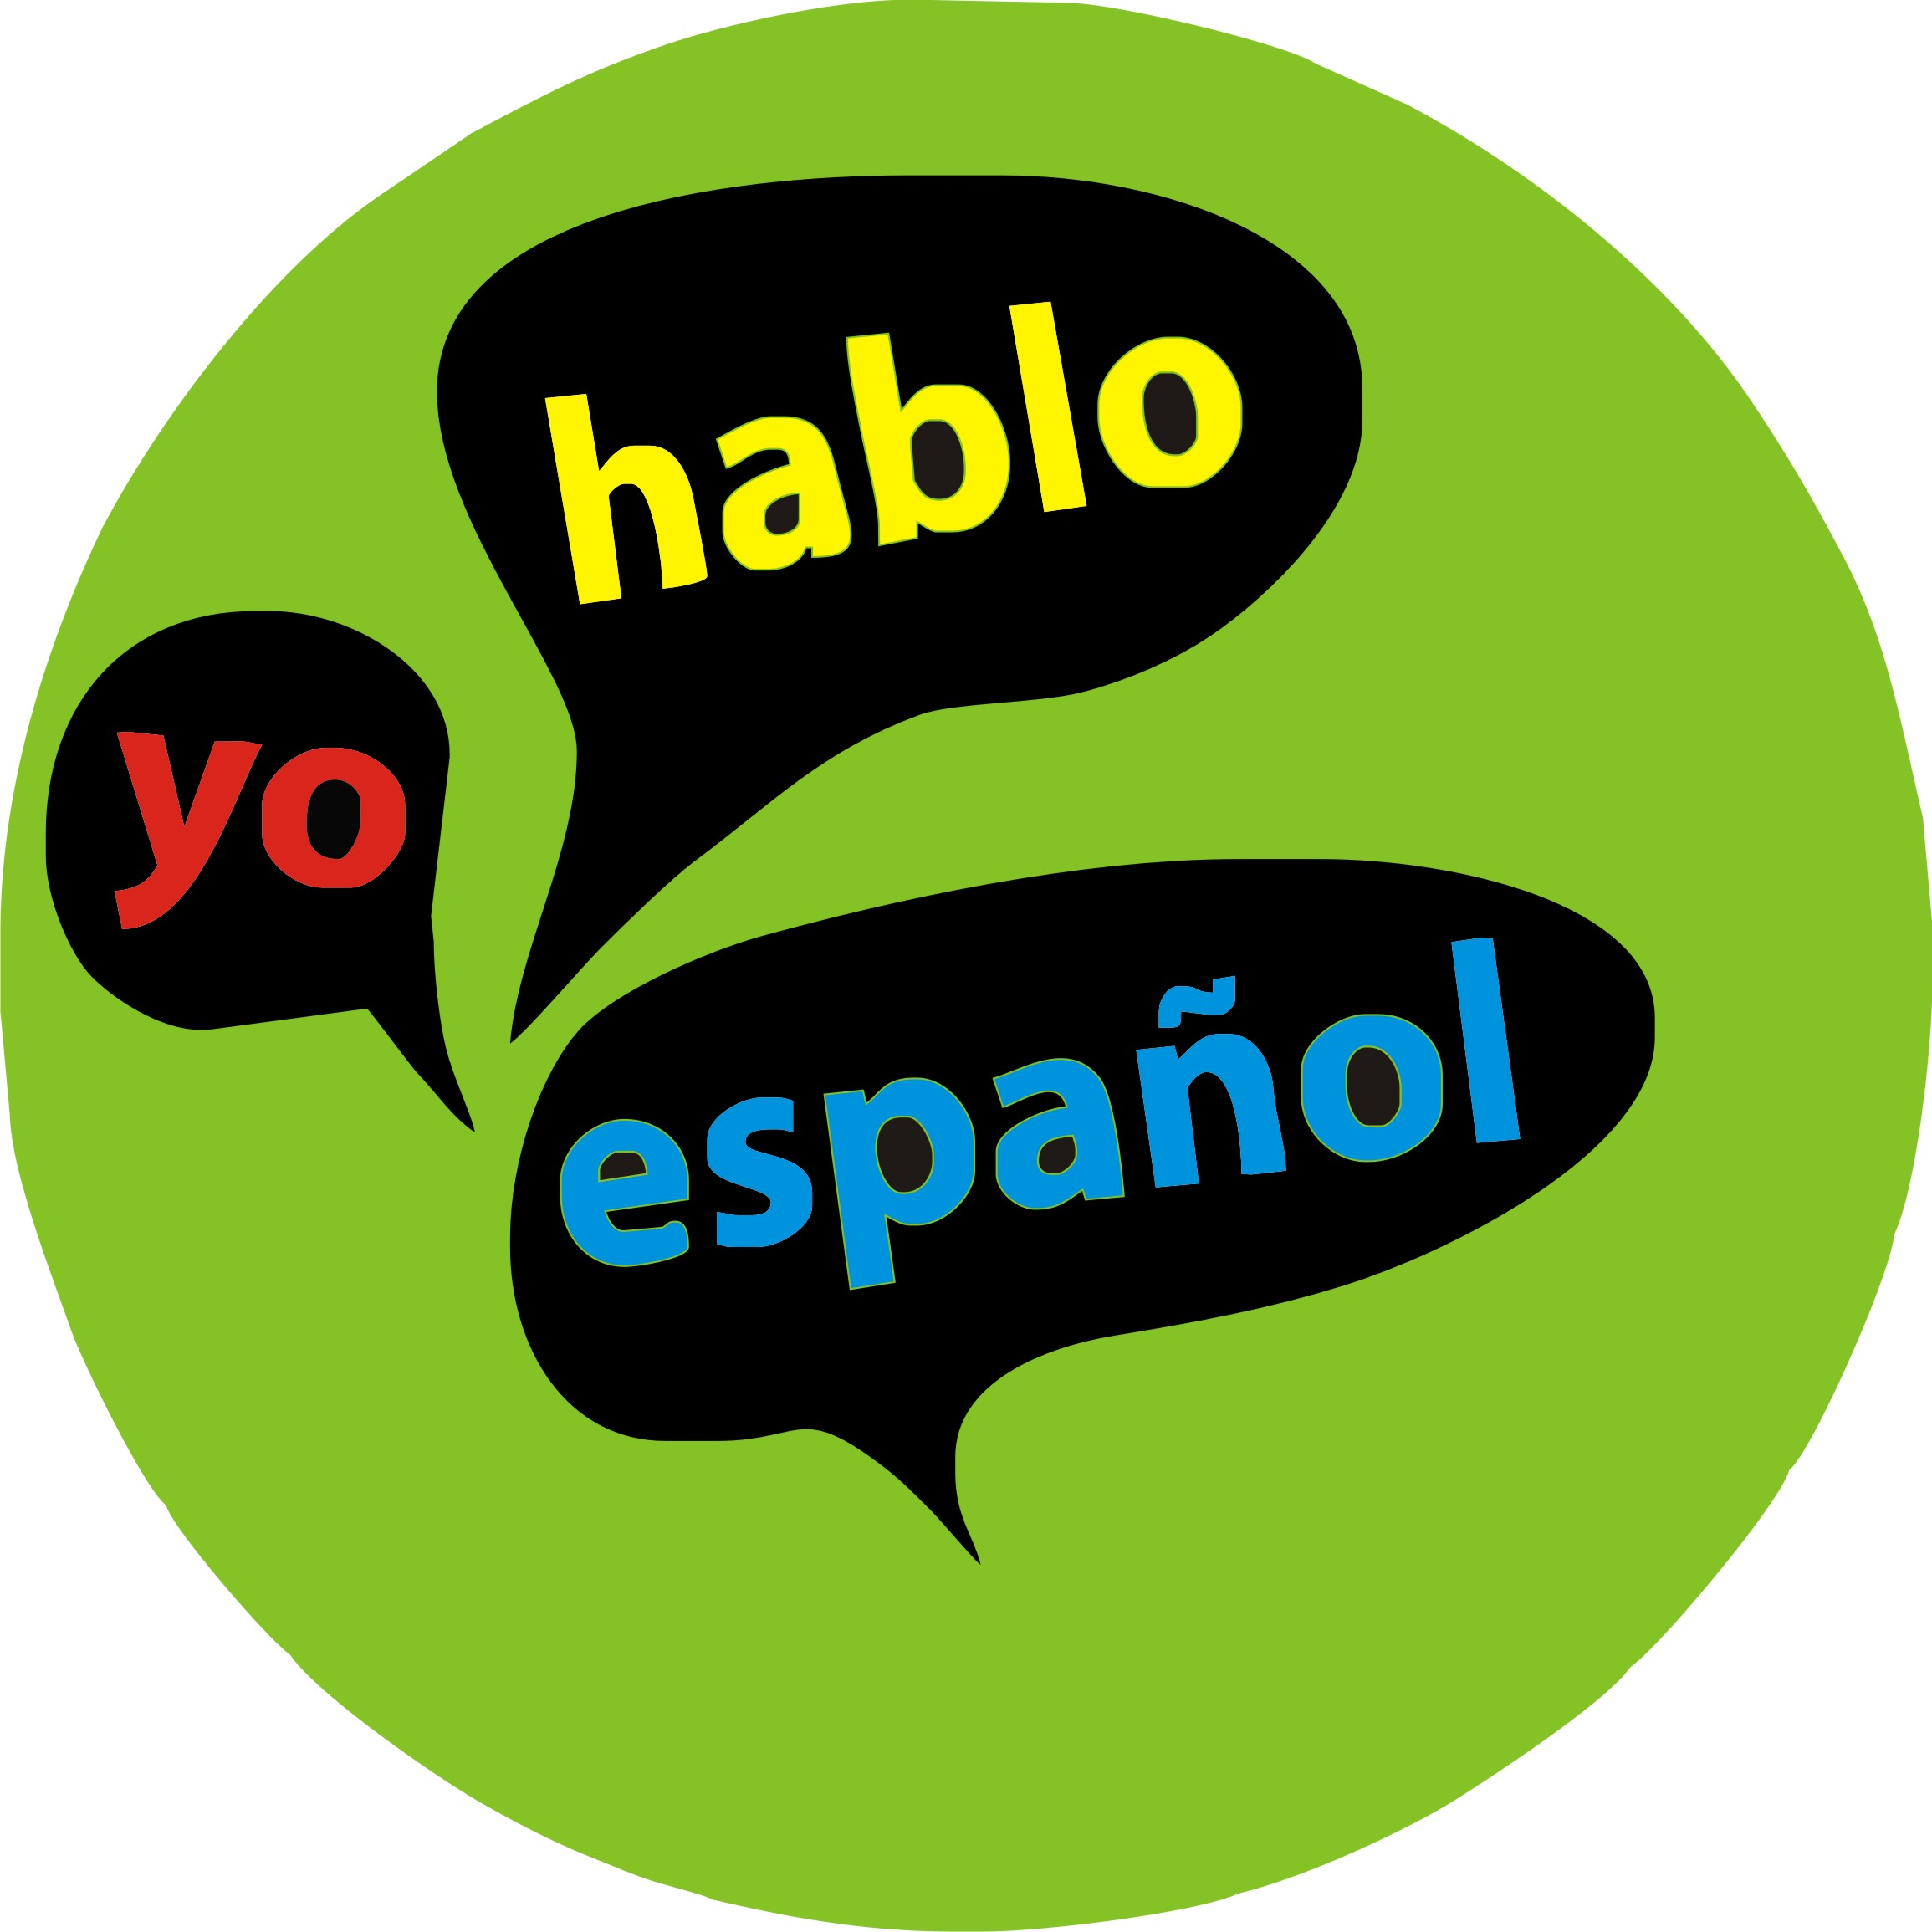 Free Spanish Cliparts, Download Free Clip Art, Free Clip Art.